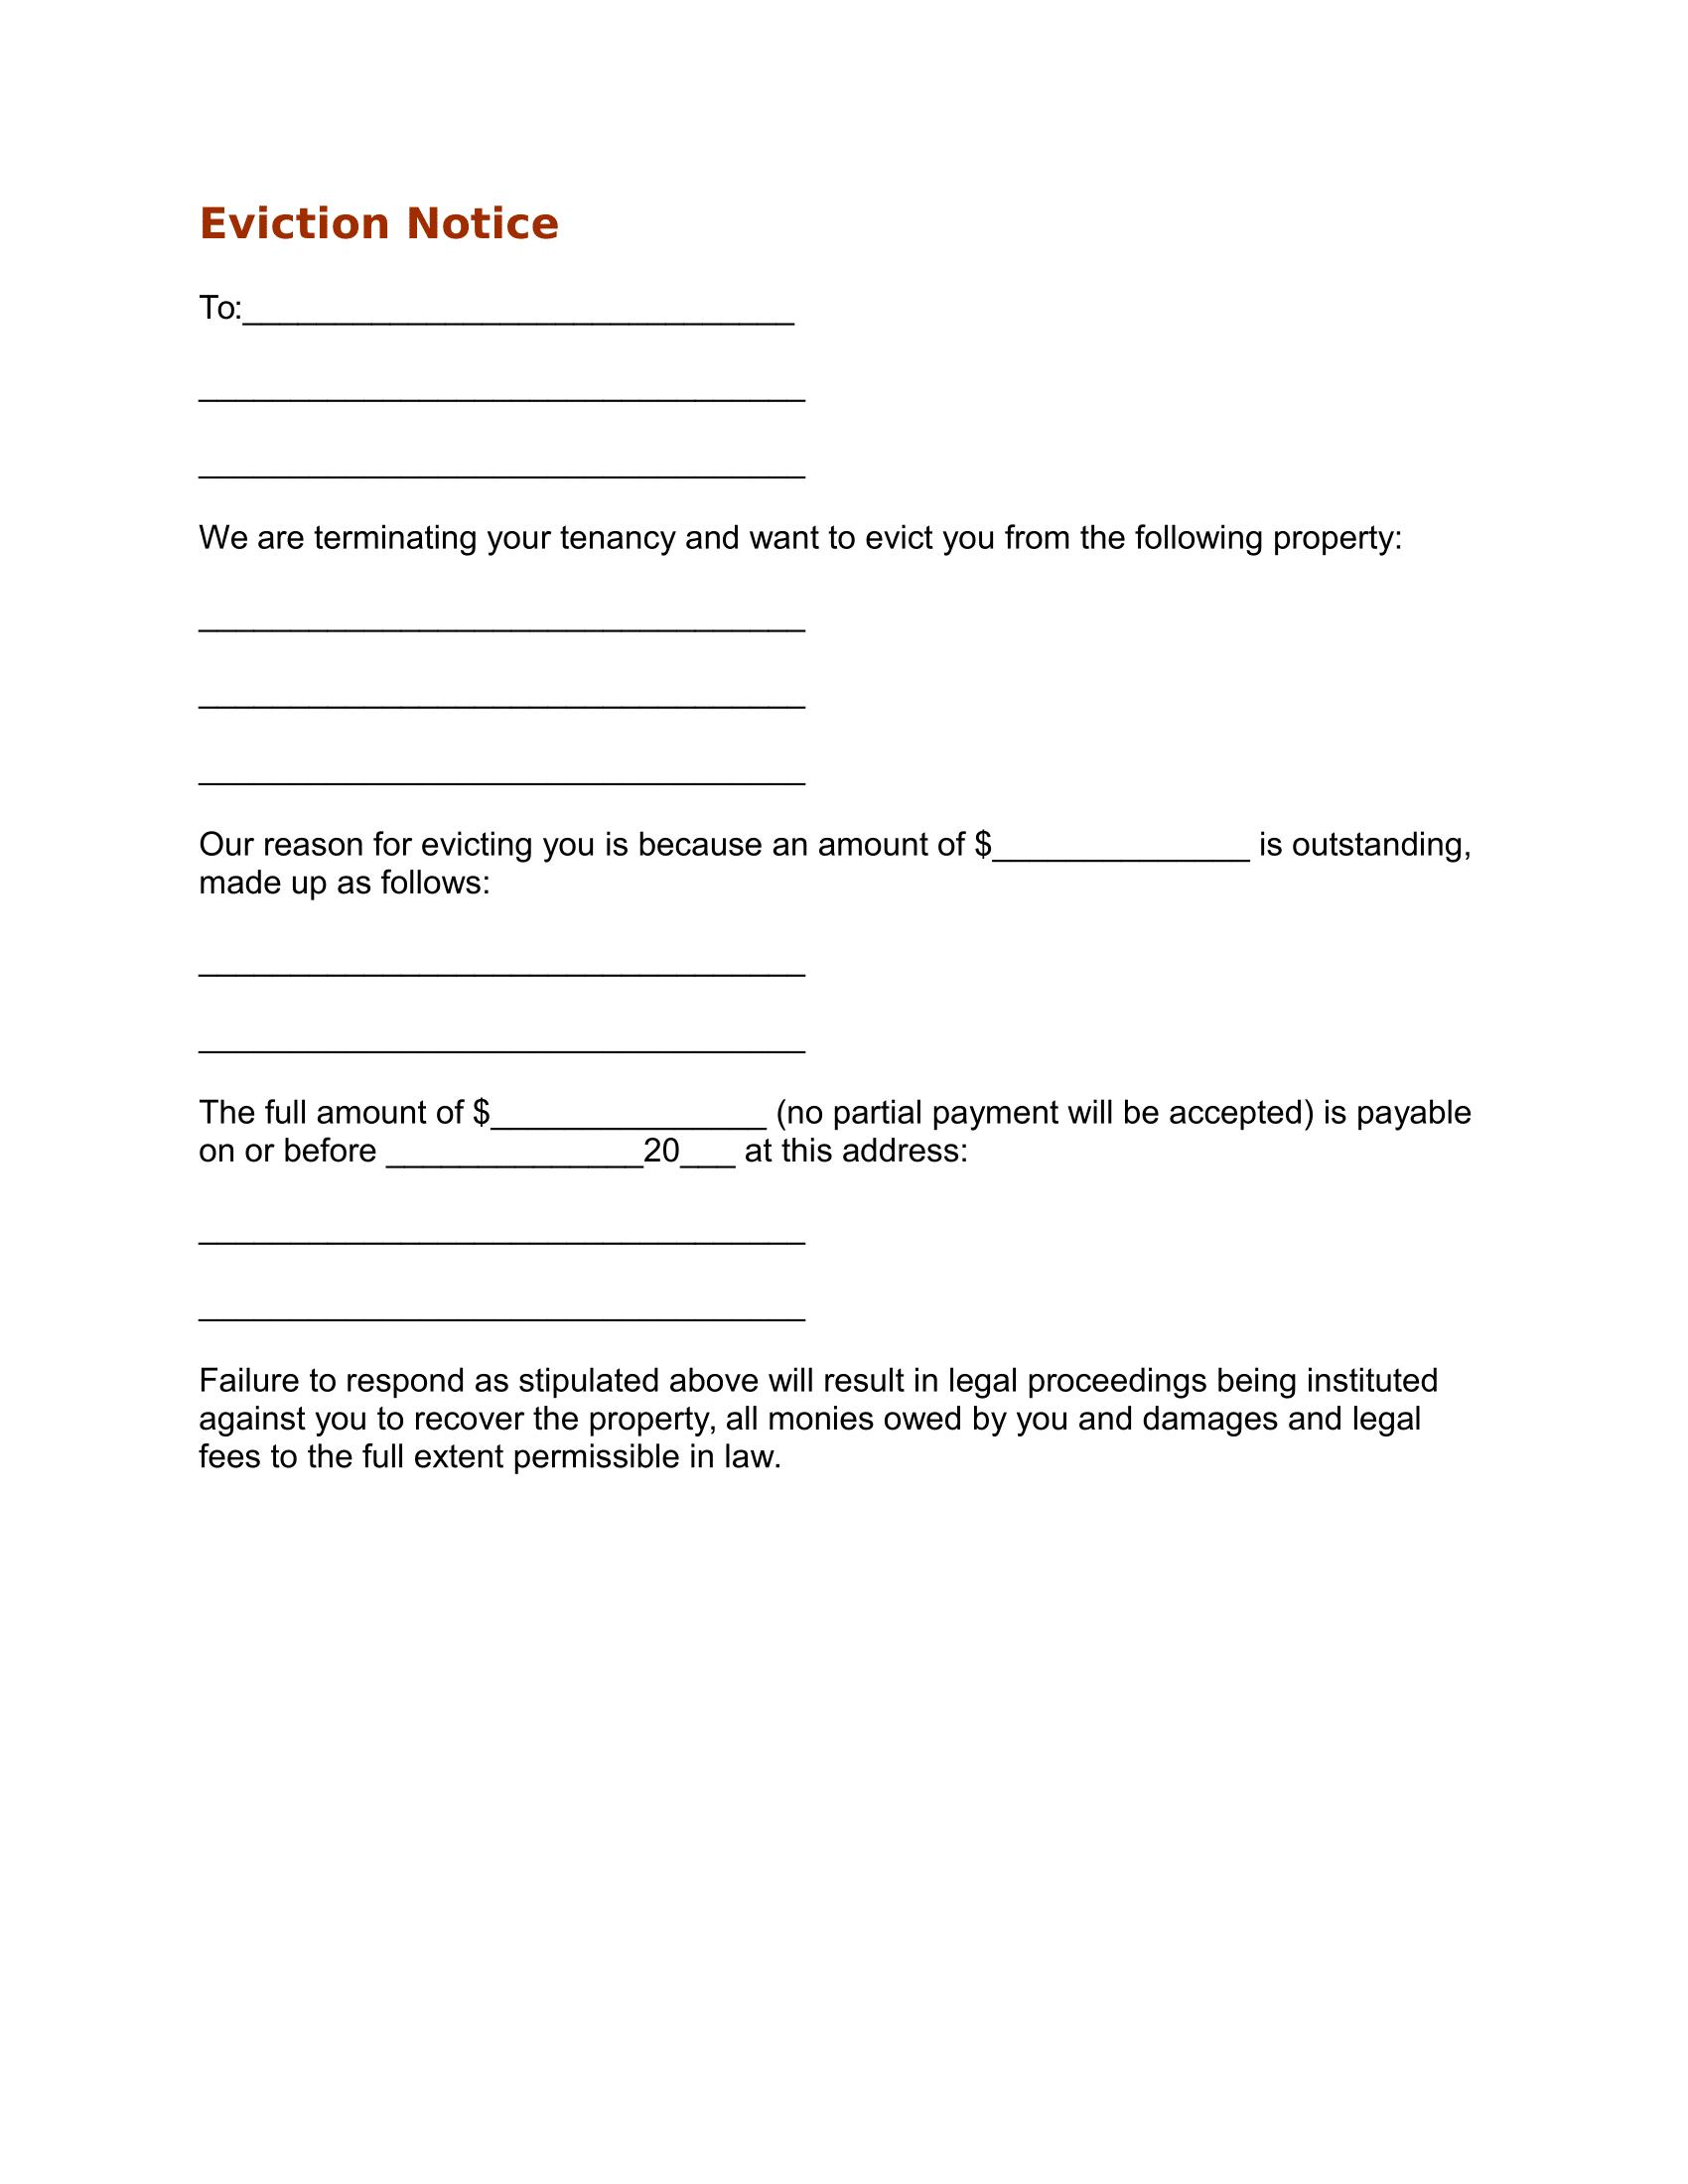 Eviction Notice Template Free Download